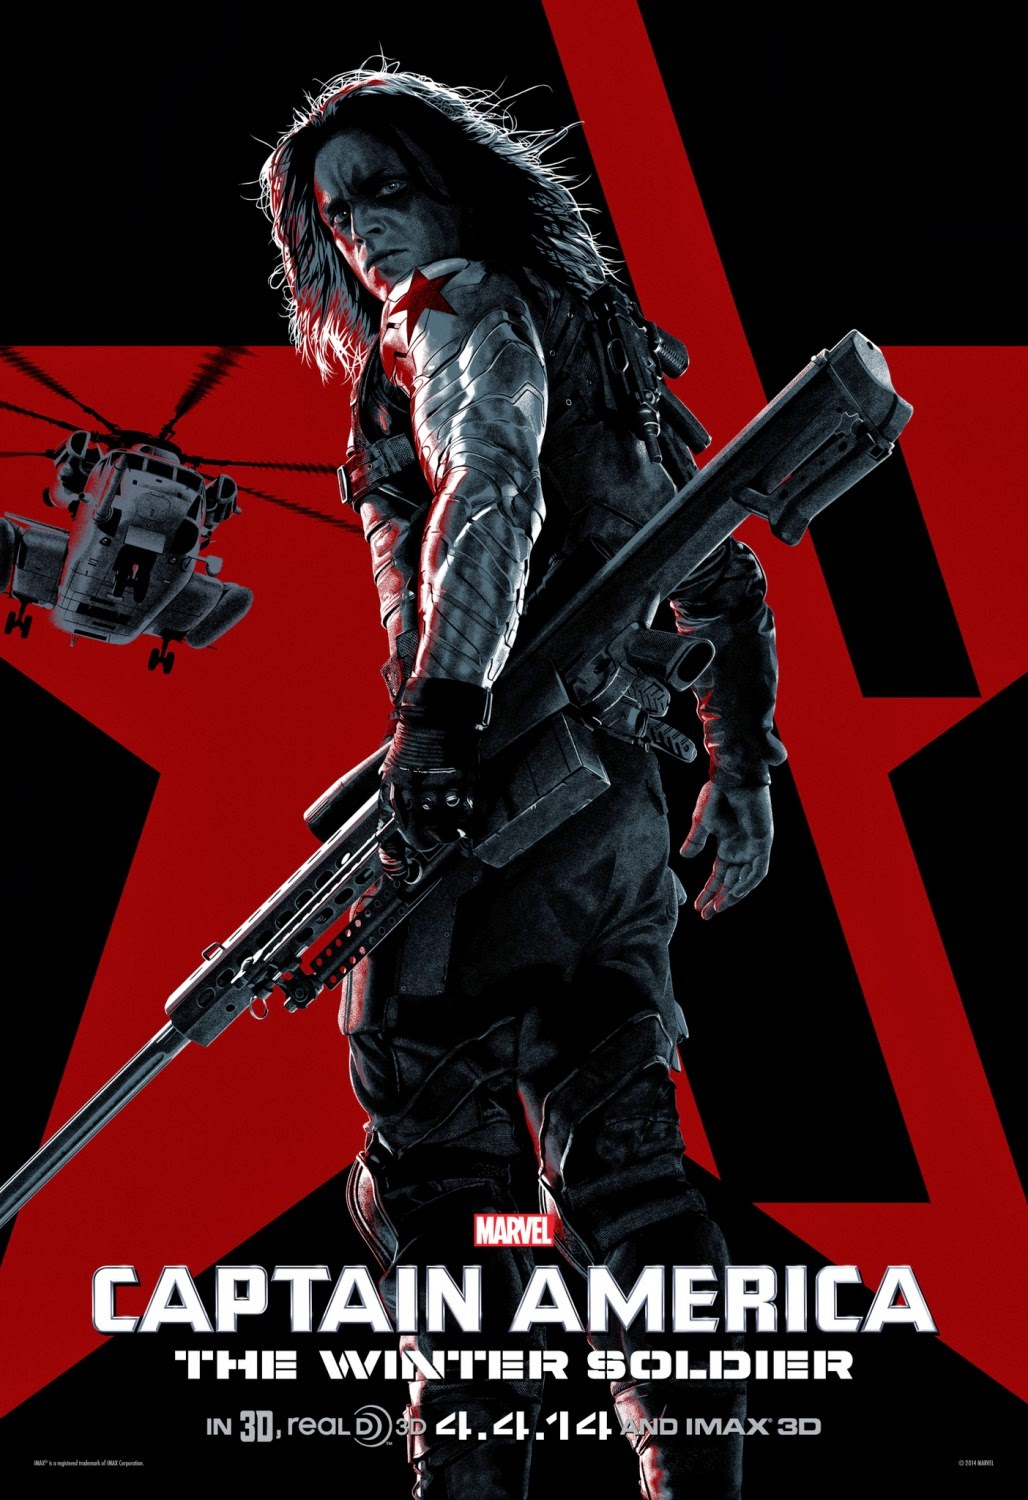 Captain America The Winter Soldier IMAX Character One Sheet Movie Poster Set - Sebastian Stan as The Winter Soldier